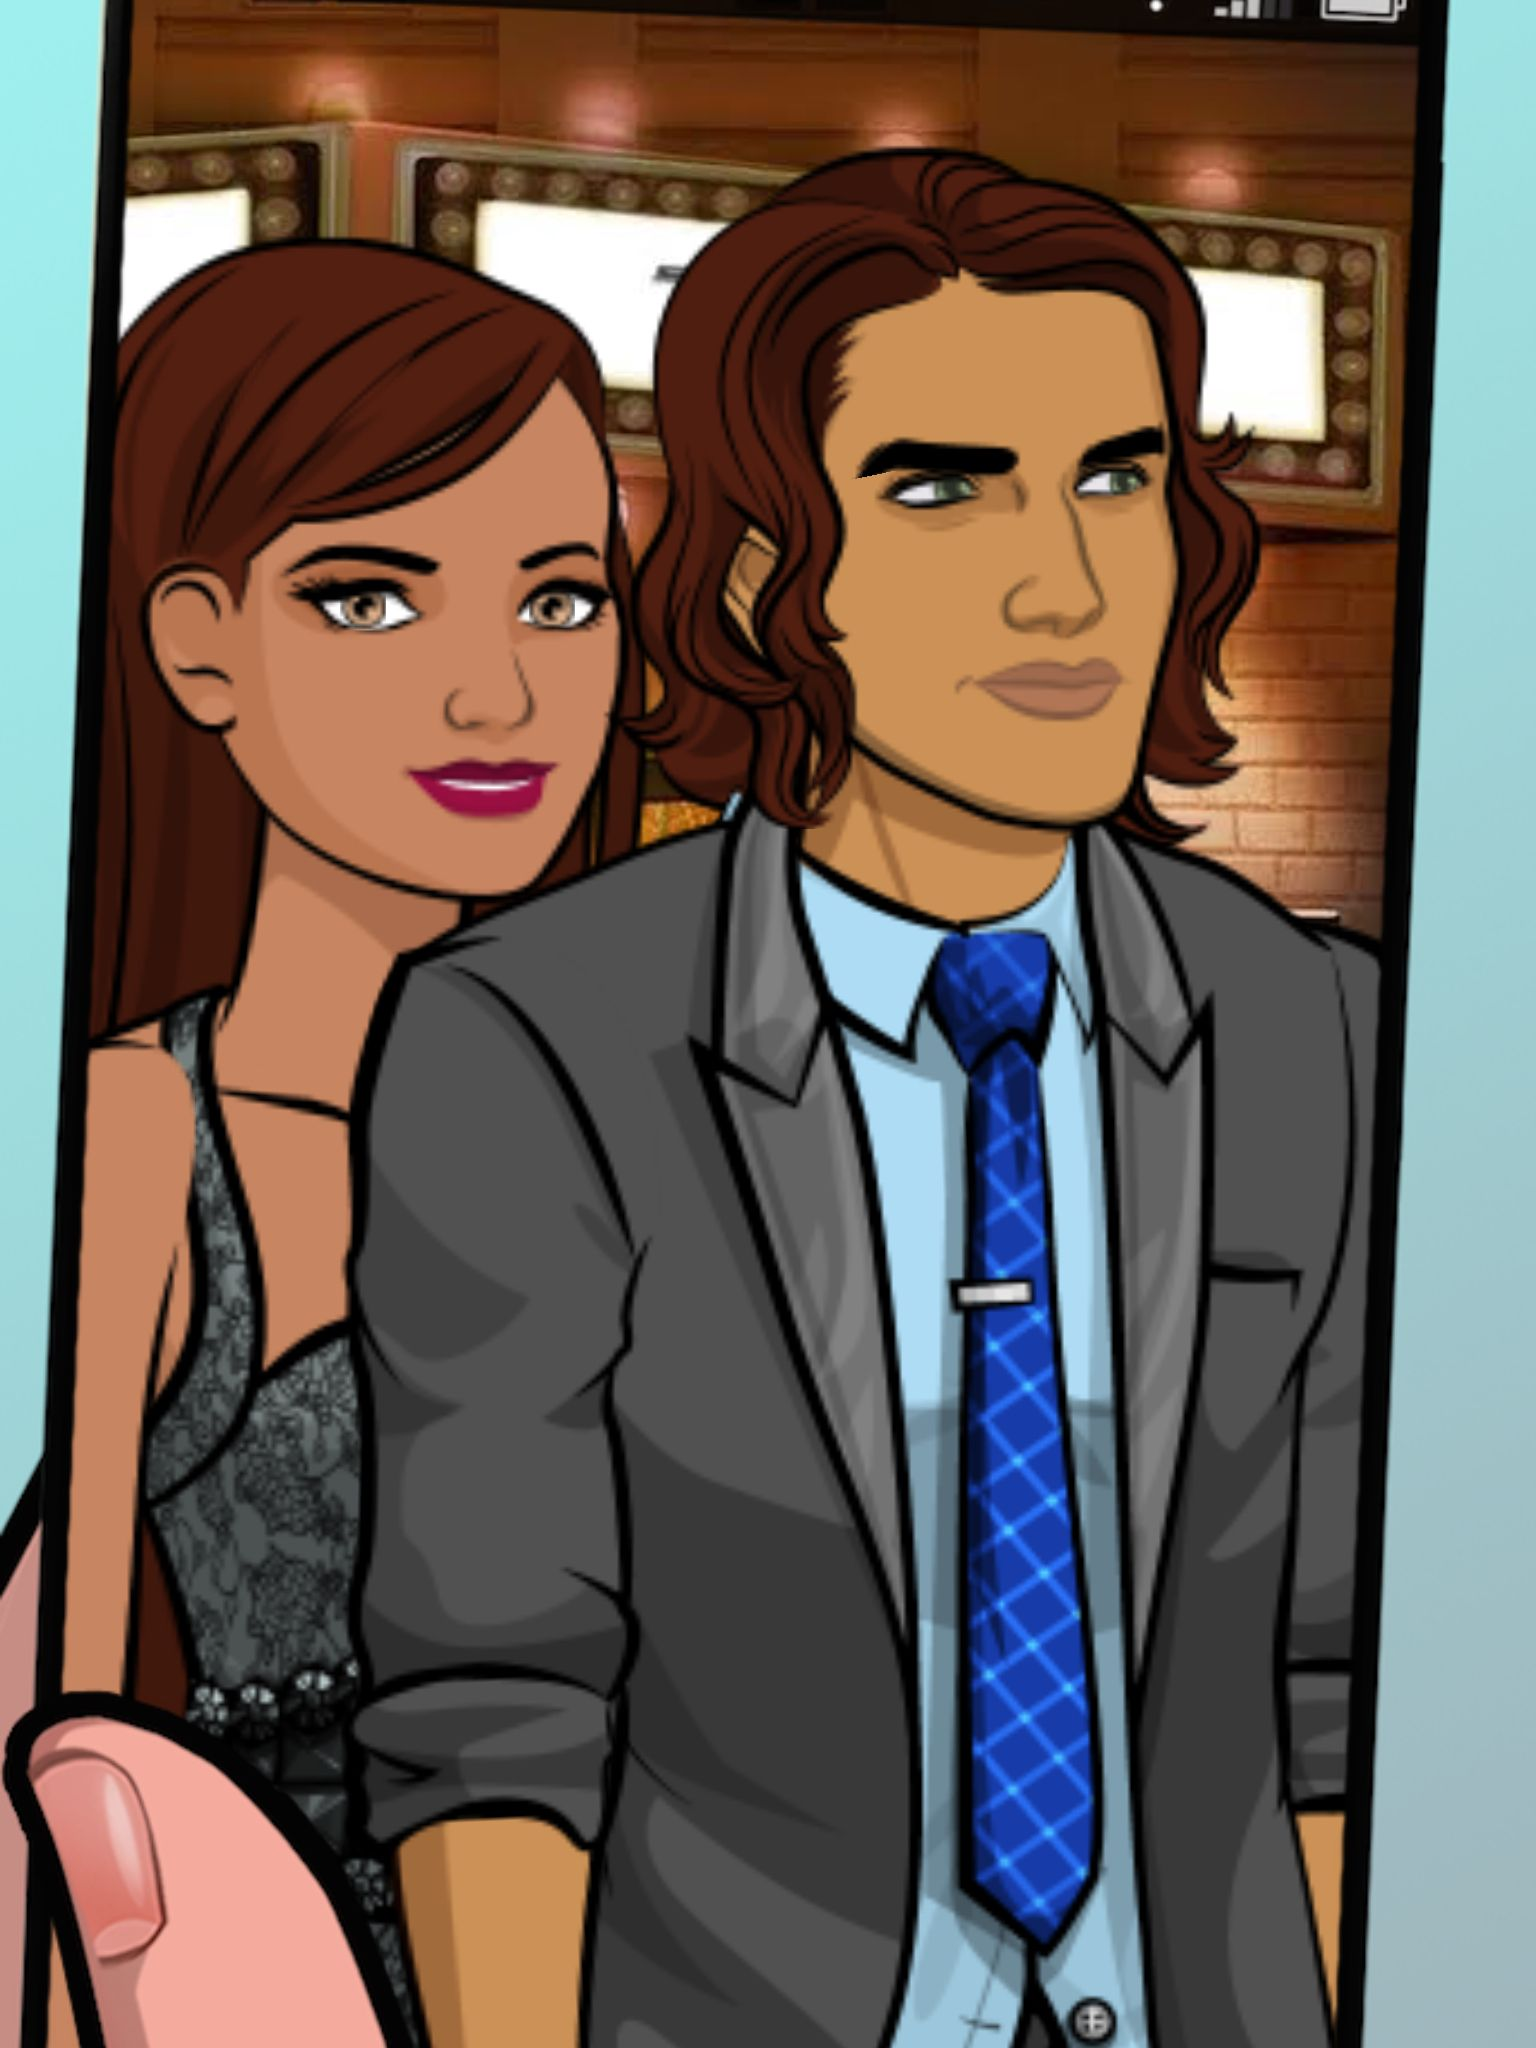 Check out my selfie with Micah! http://bit.ly/EpisodeHere